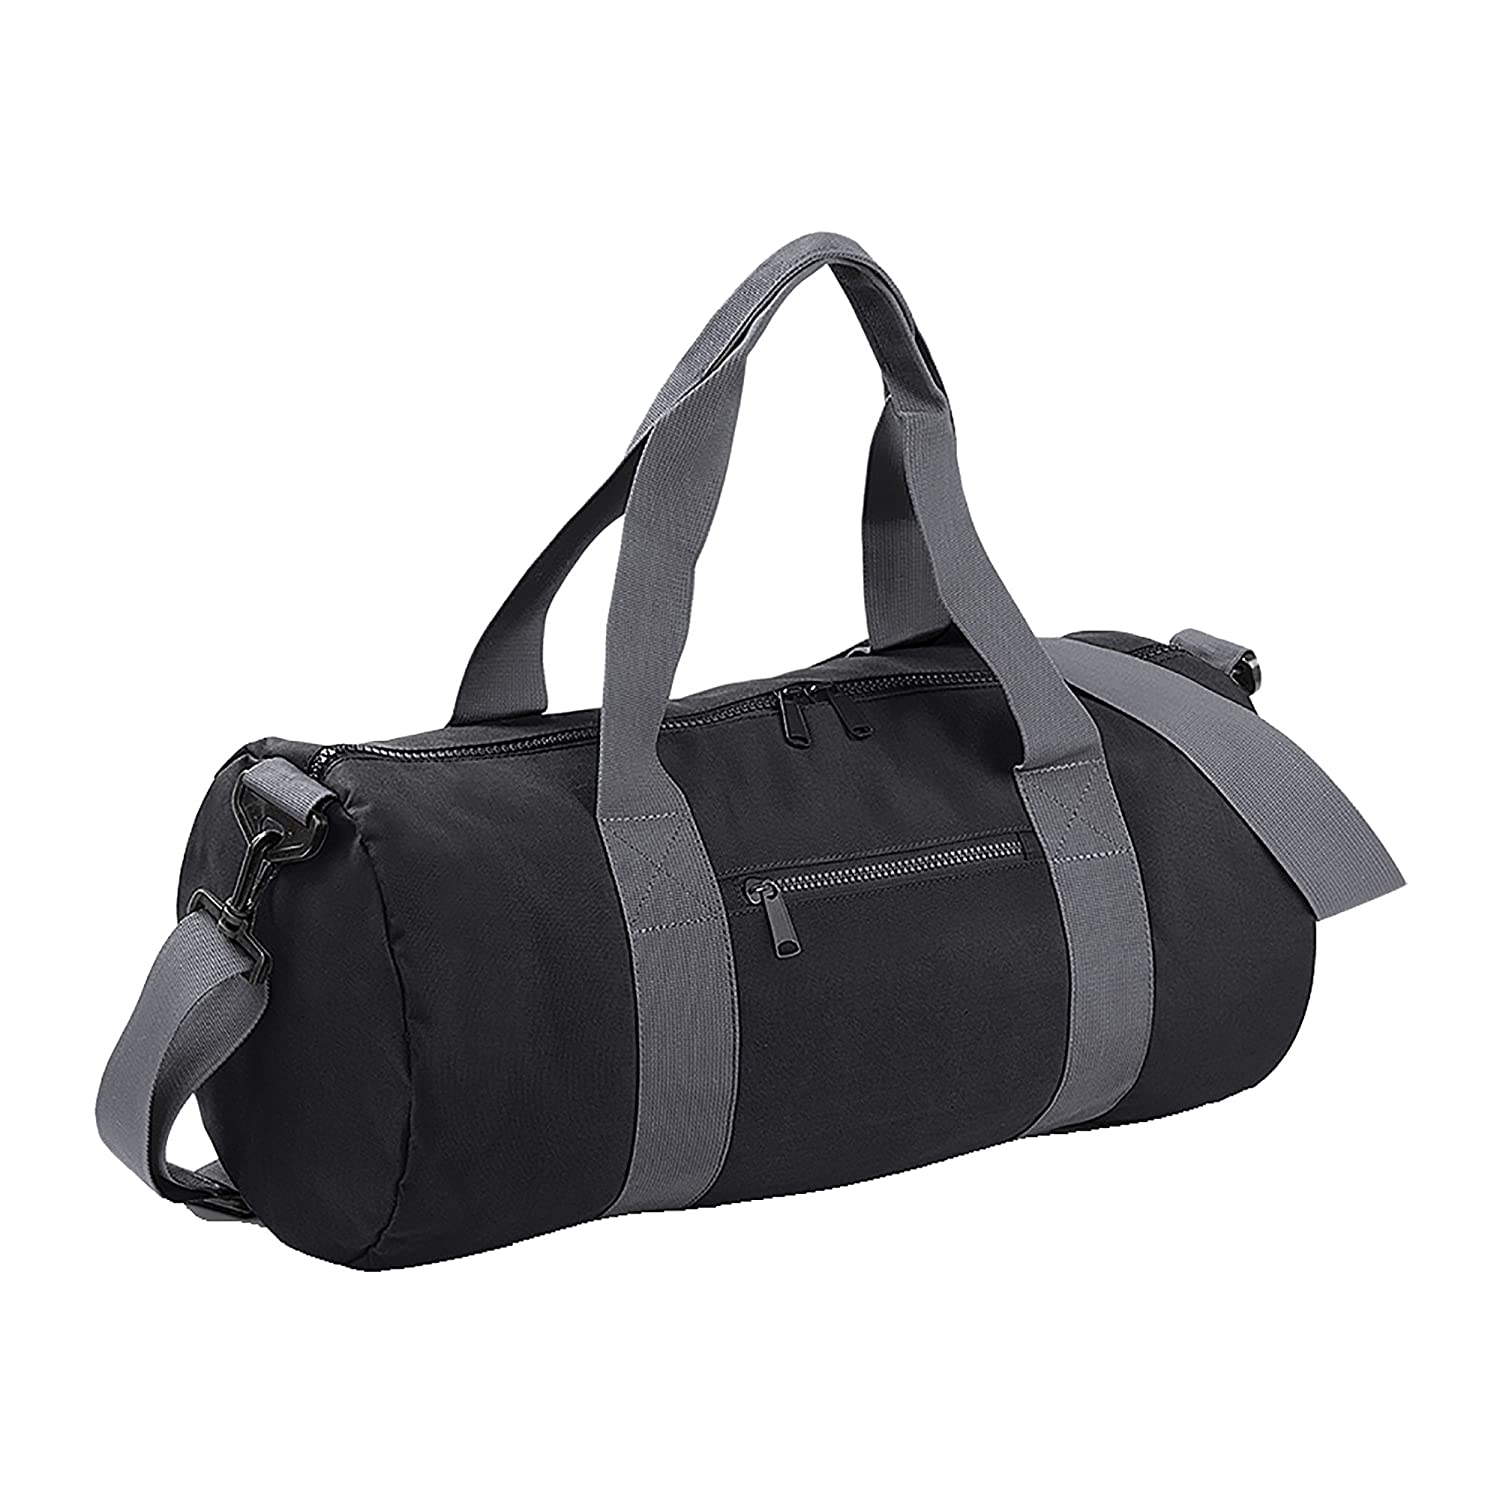 VIMUK Varsity Barrel   Duffle Bag (20 Litres)  Amazon.co.uk  Clothing 190f0004efdad